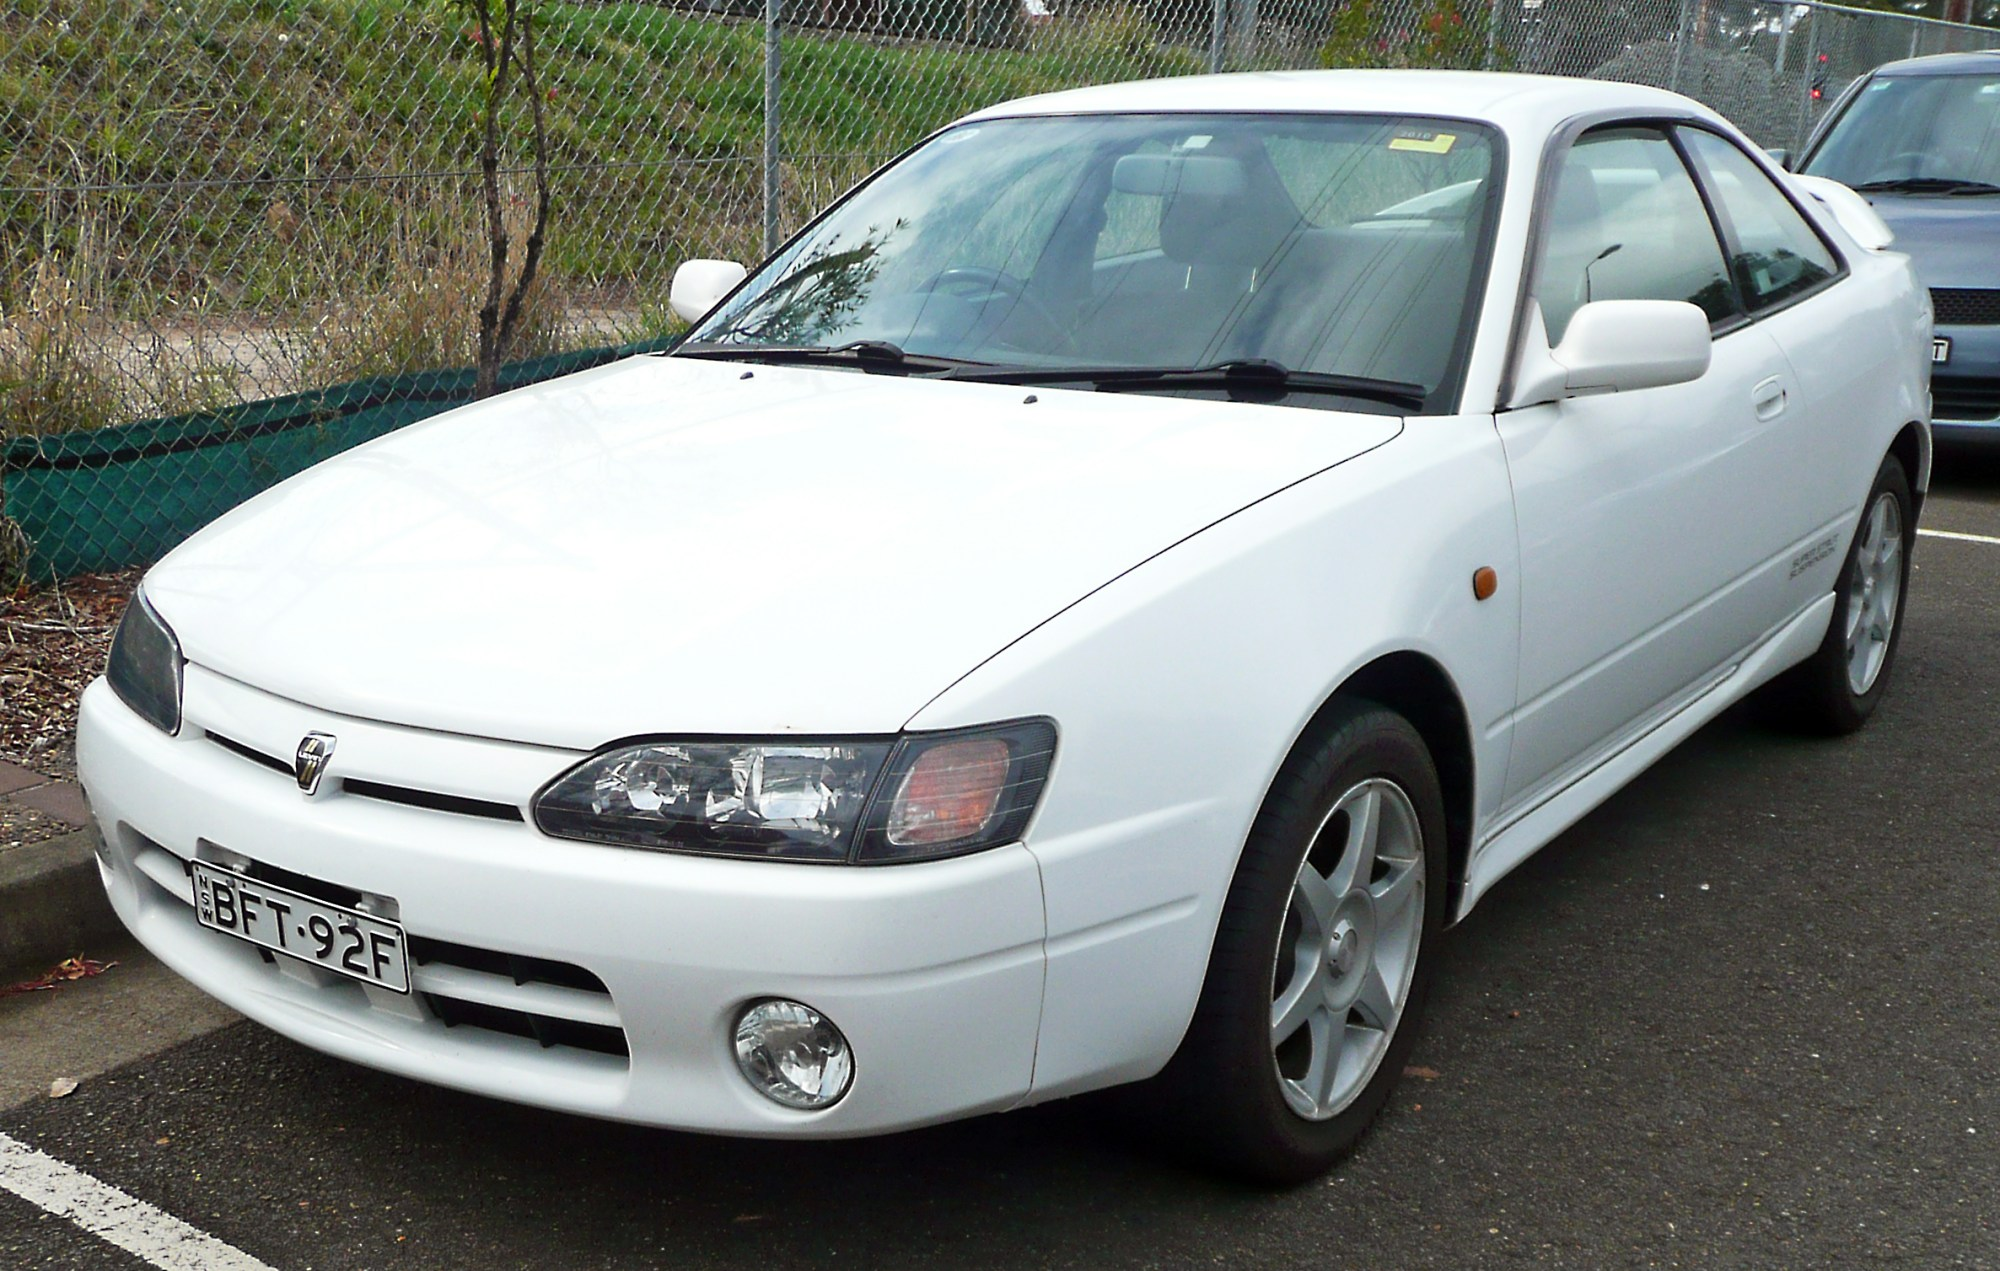 hight resolution of file 1997 2000 toyota corolla levin ae111 bz r coupe 01